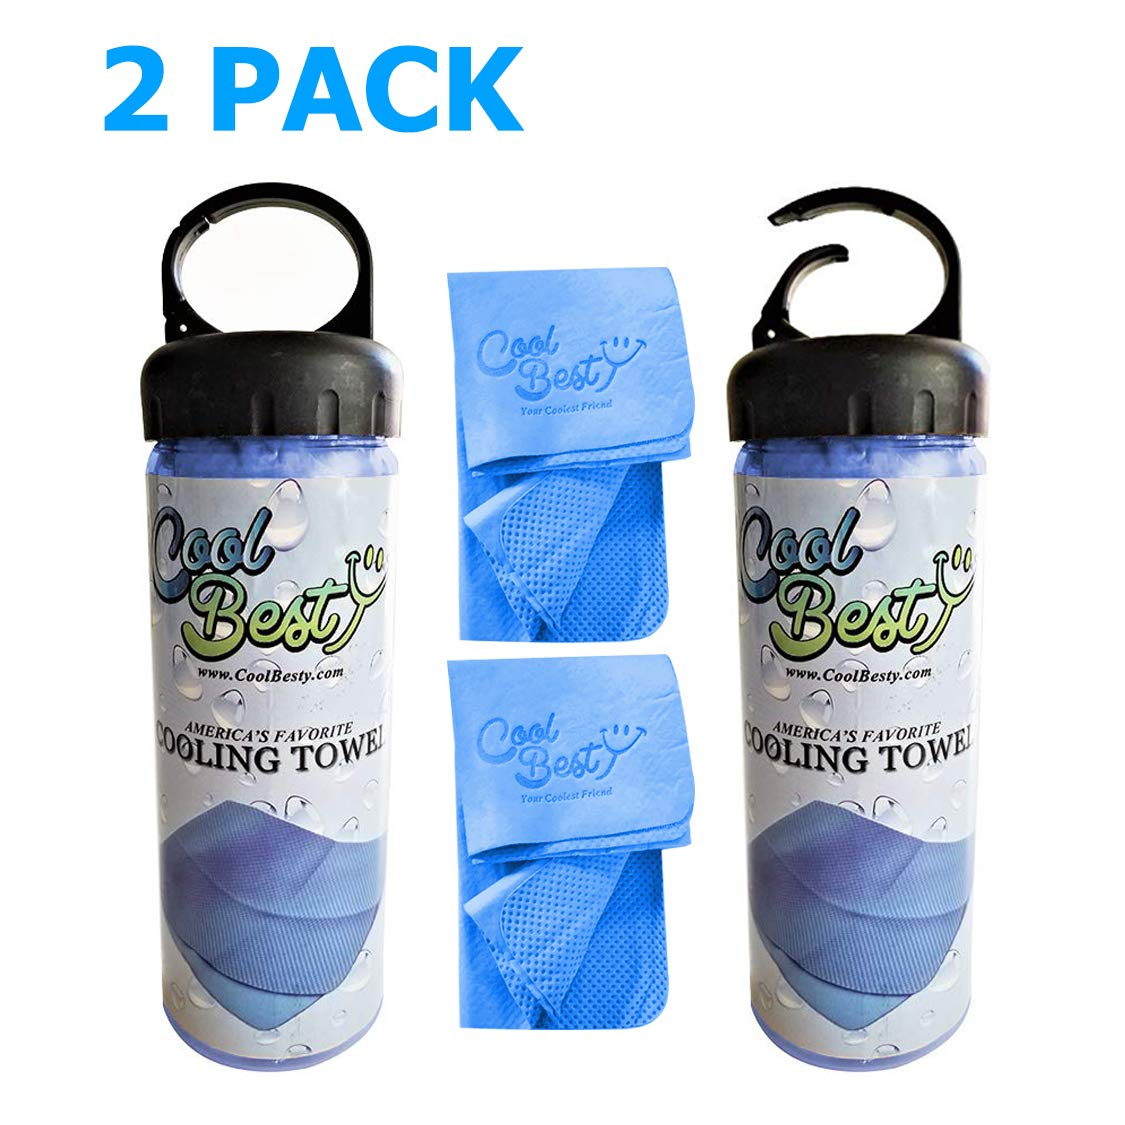 Cool Besty 2 Pack-Blue/Blue - Cooling Towel-Workout/Tennis/Golf/Biking-Best for Any Sport Activities&Athletes Cold Towel-Chilly Pad Instant Cooling Snap Towel-Perfect for Fitness&Gym